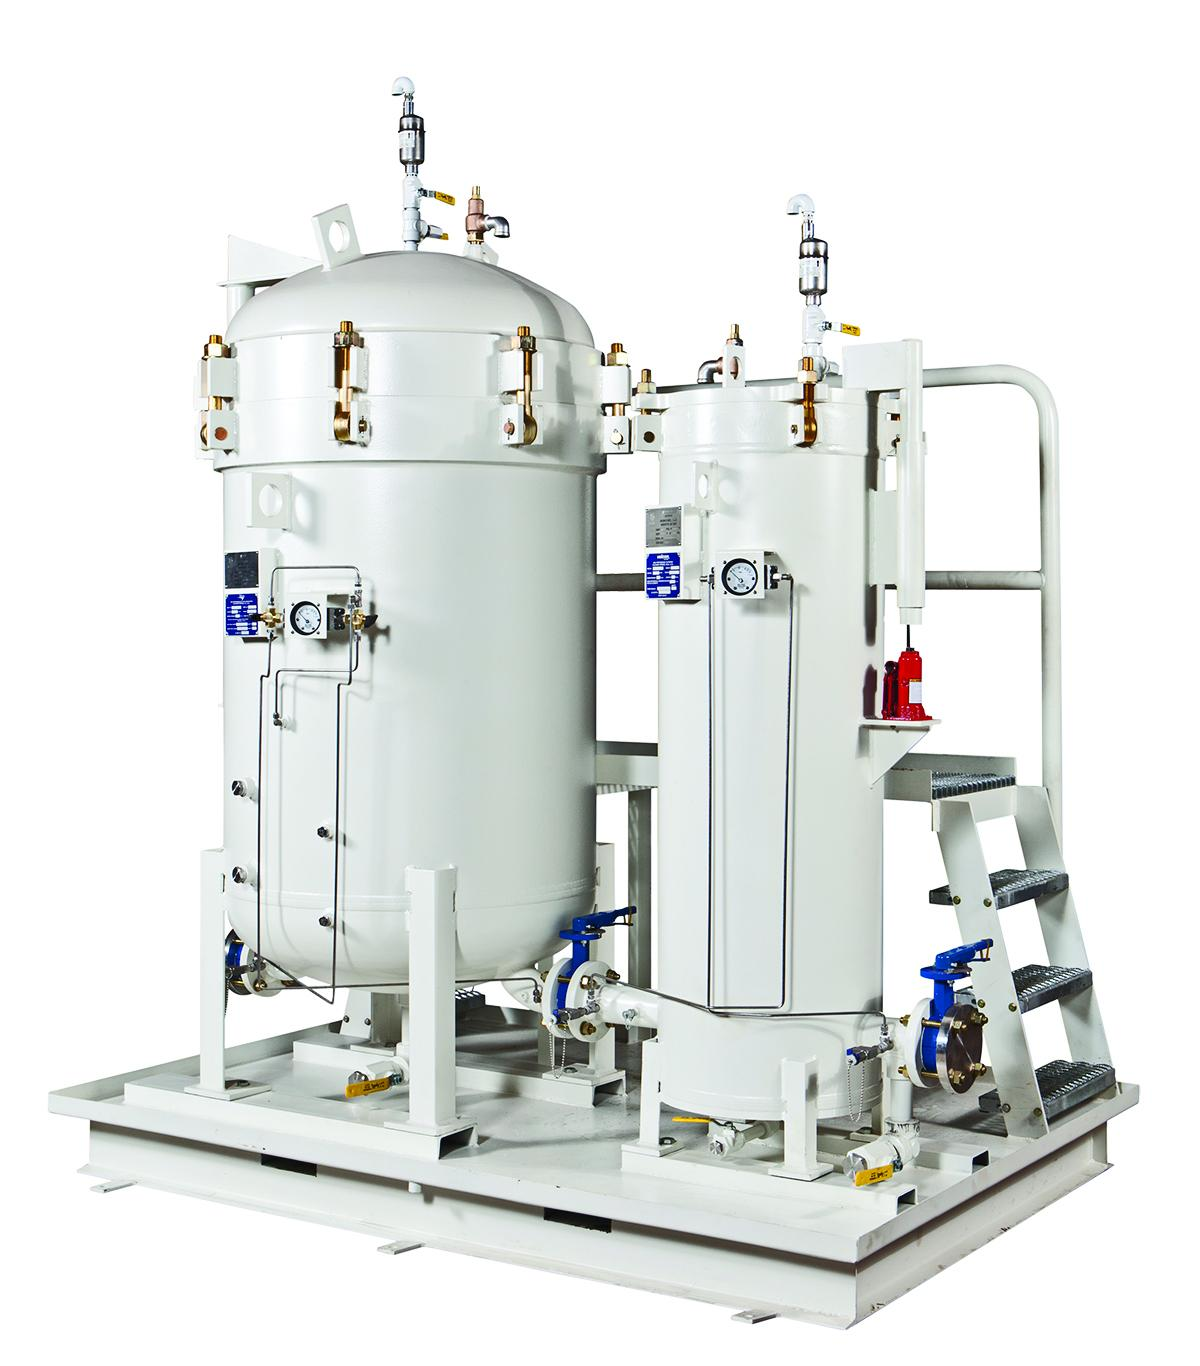 Velcon Diesel Filtration Skids systems optimised for removal of particulate and water contaminant.  Combing both micronic filtration of the DFO with the water separation performance of the DI/DSO